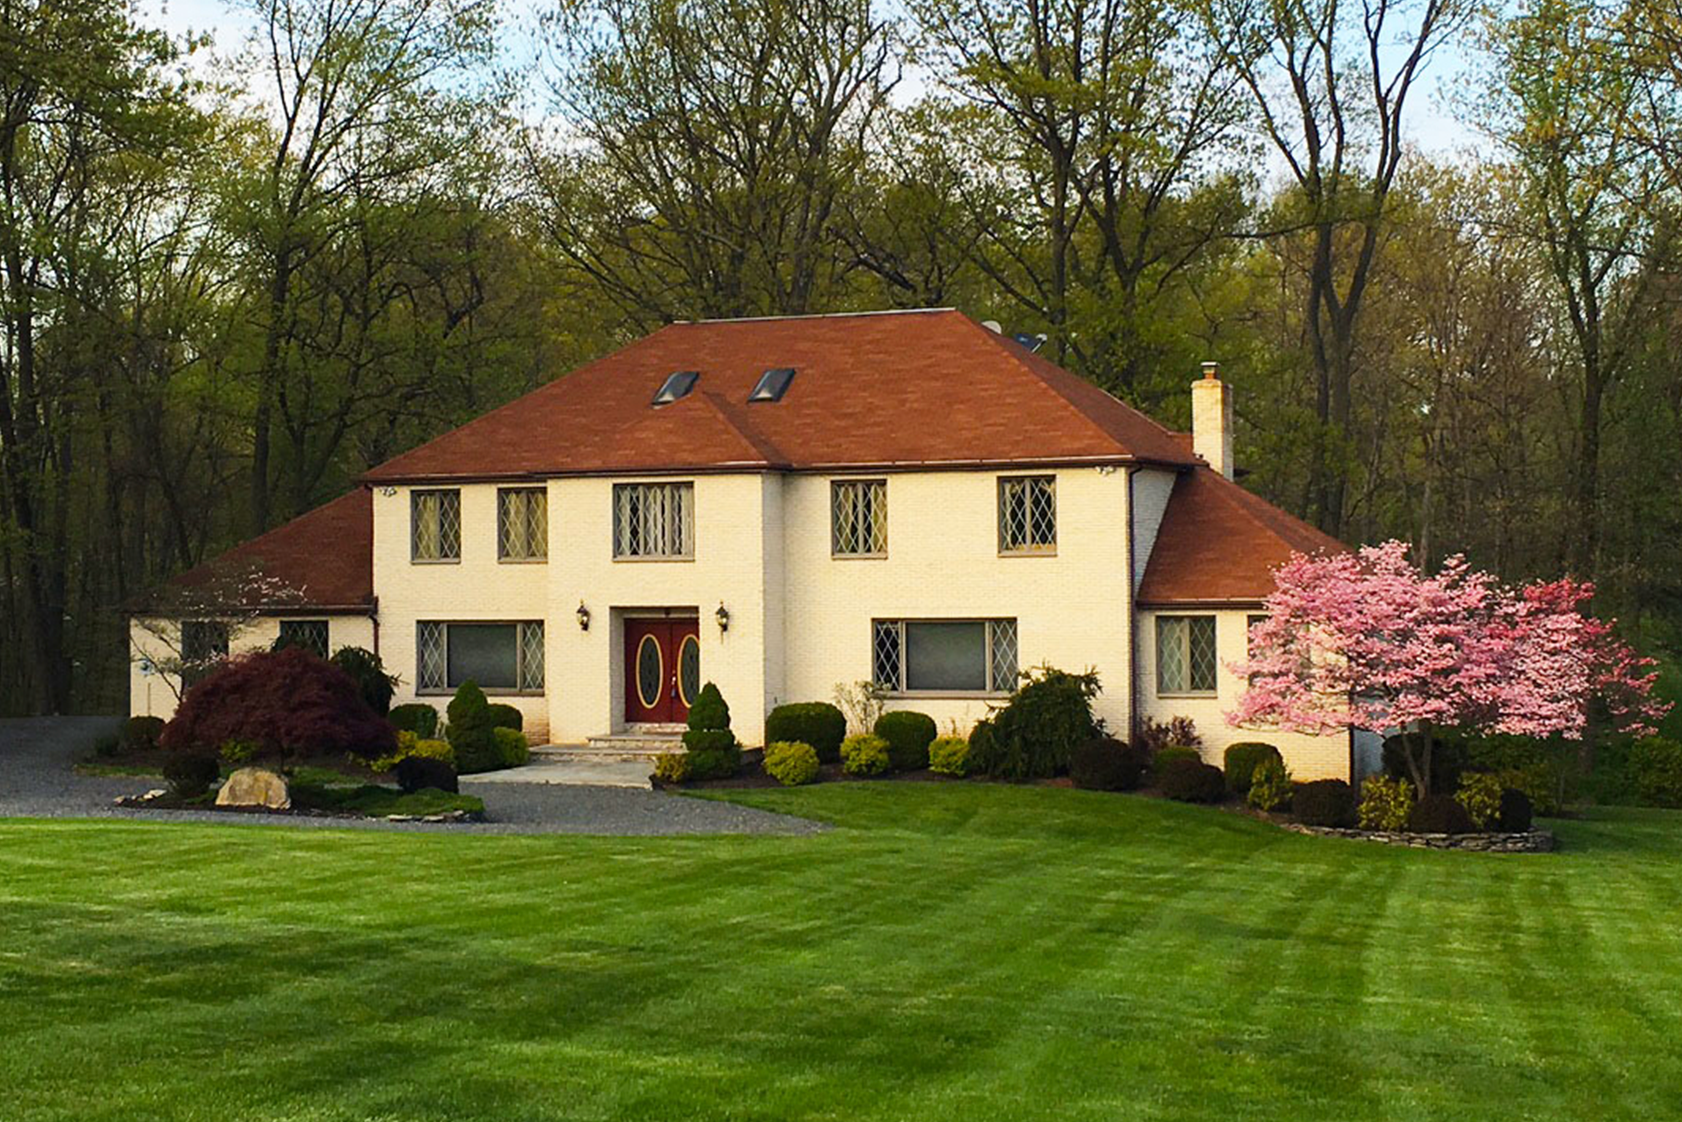 67-2 Ballantine Road, Bernardsville Borough